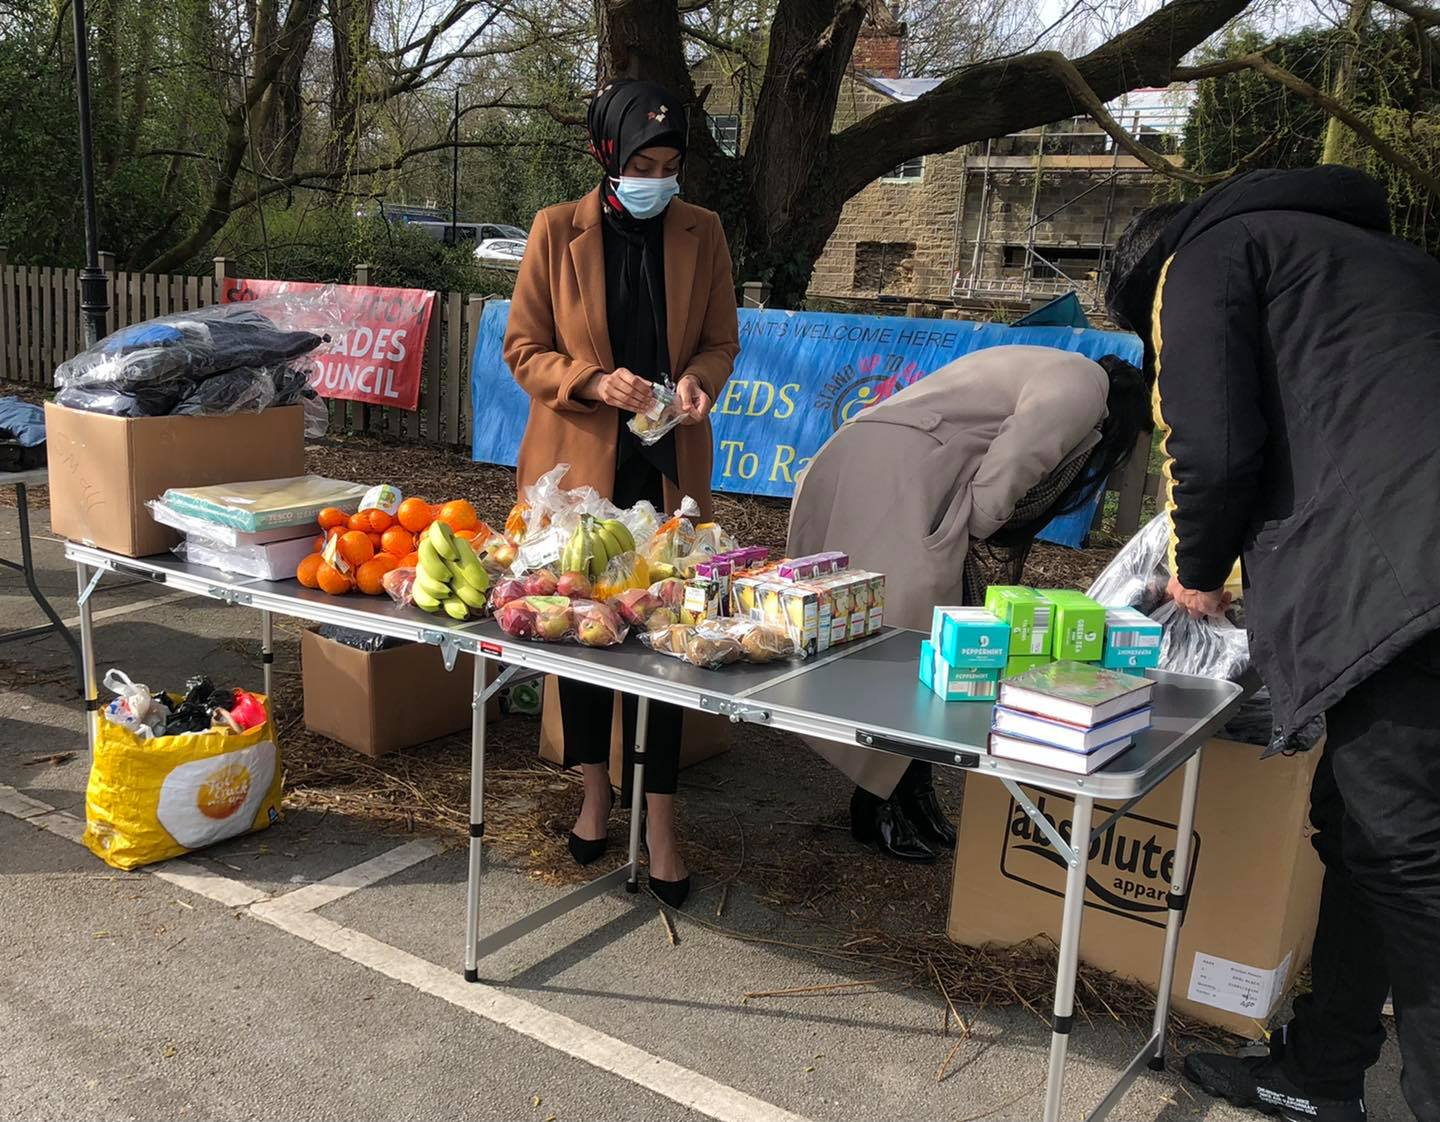 Volunteers wearing medical grade masks stand behind a table of food and items for distribution